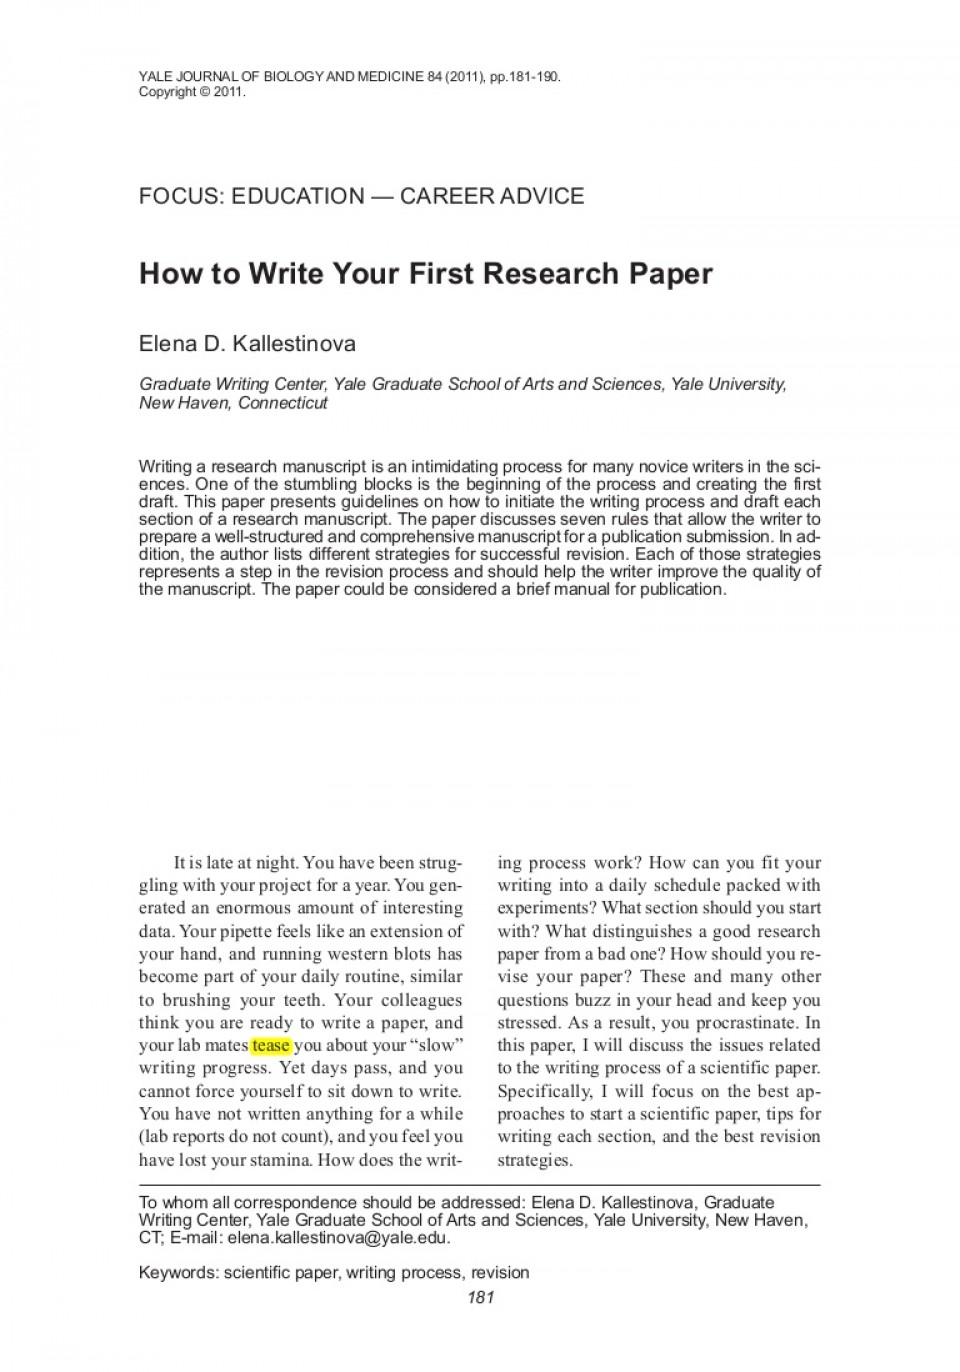 013 How To Write Research Papers Paper Howtowriteyourfirstresearchpaper Lva1 App6891 Thumbnail Best A - Pdf (2015) Conclusion An Introduction And 960